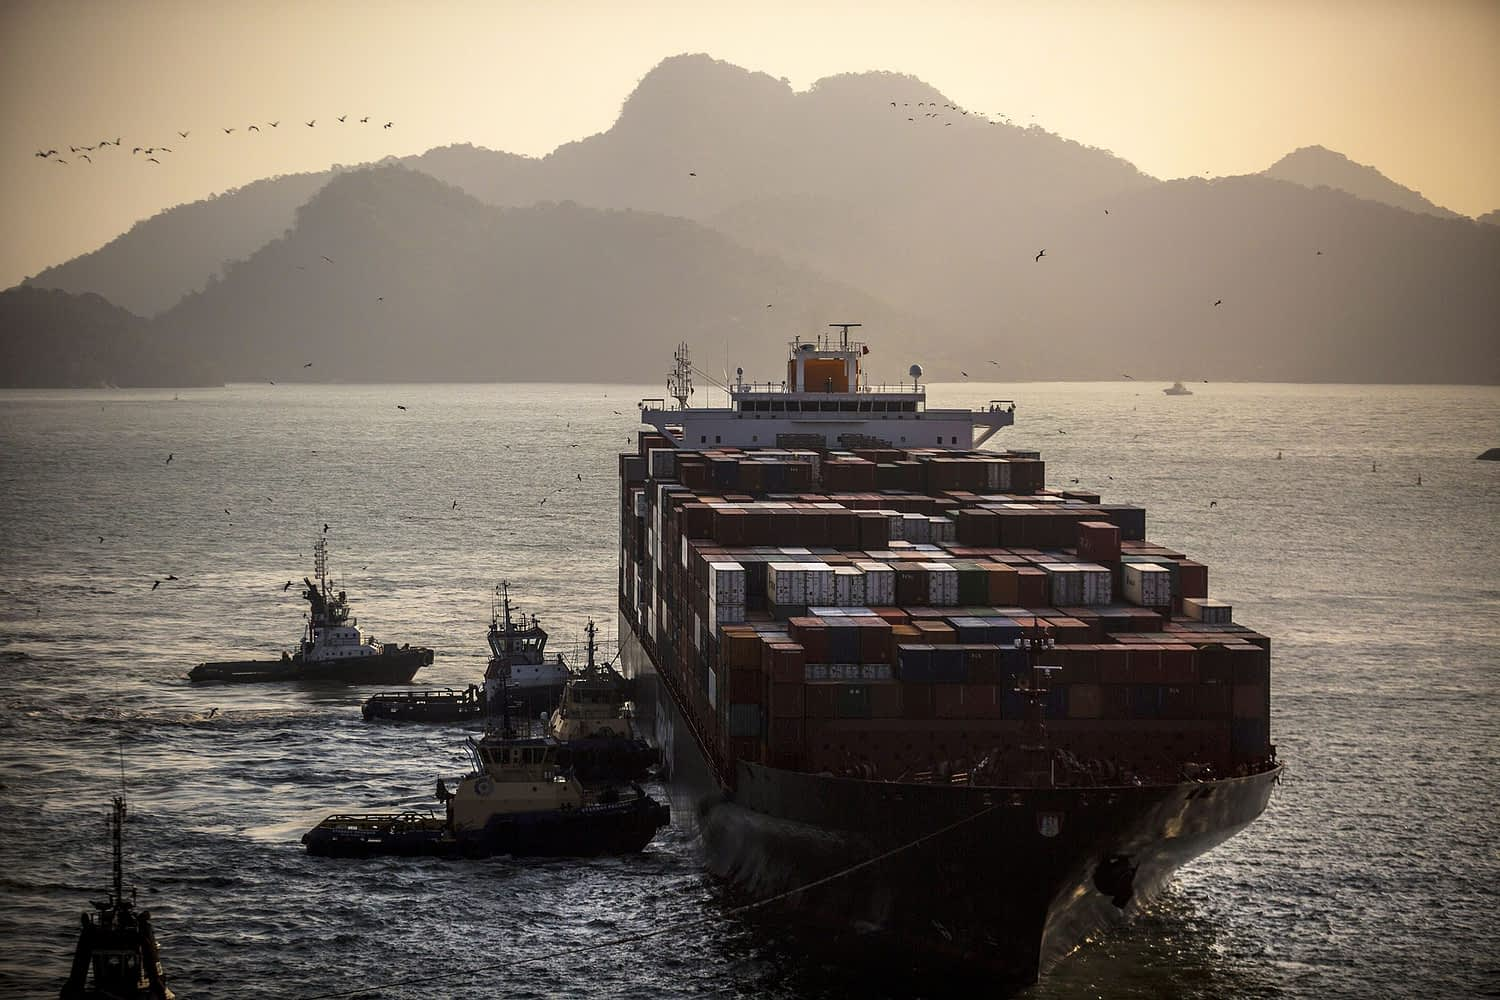 LionRock Maritime to expand its operation into Latin America